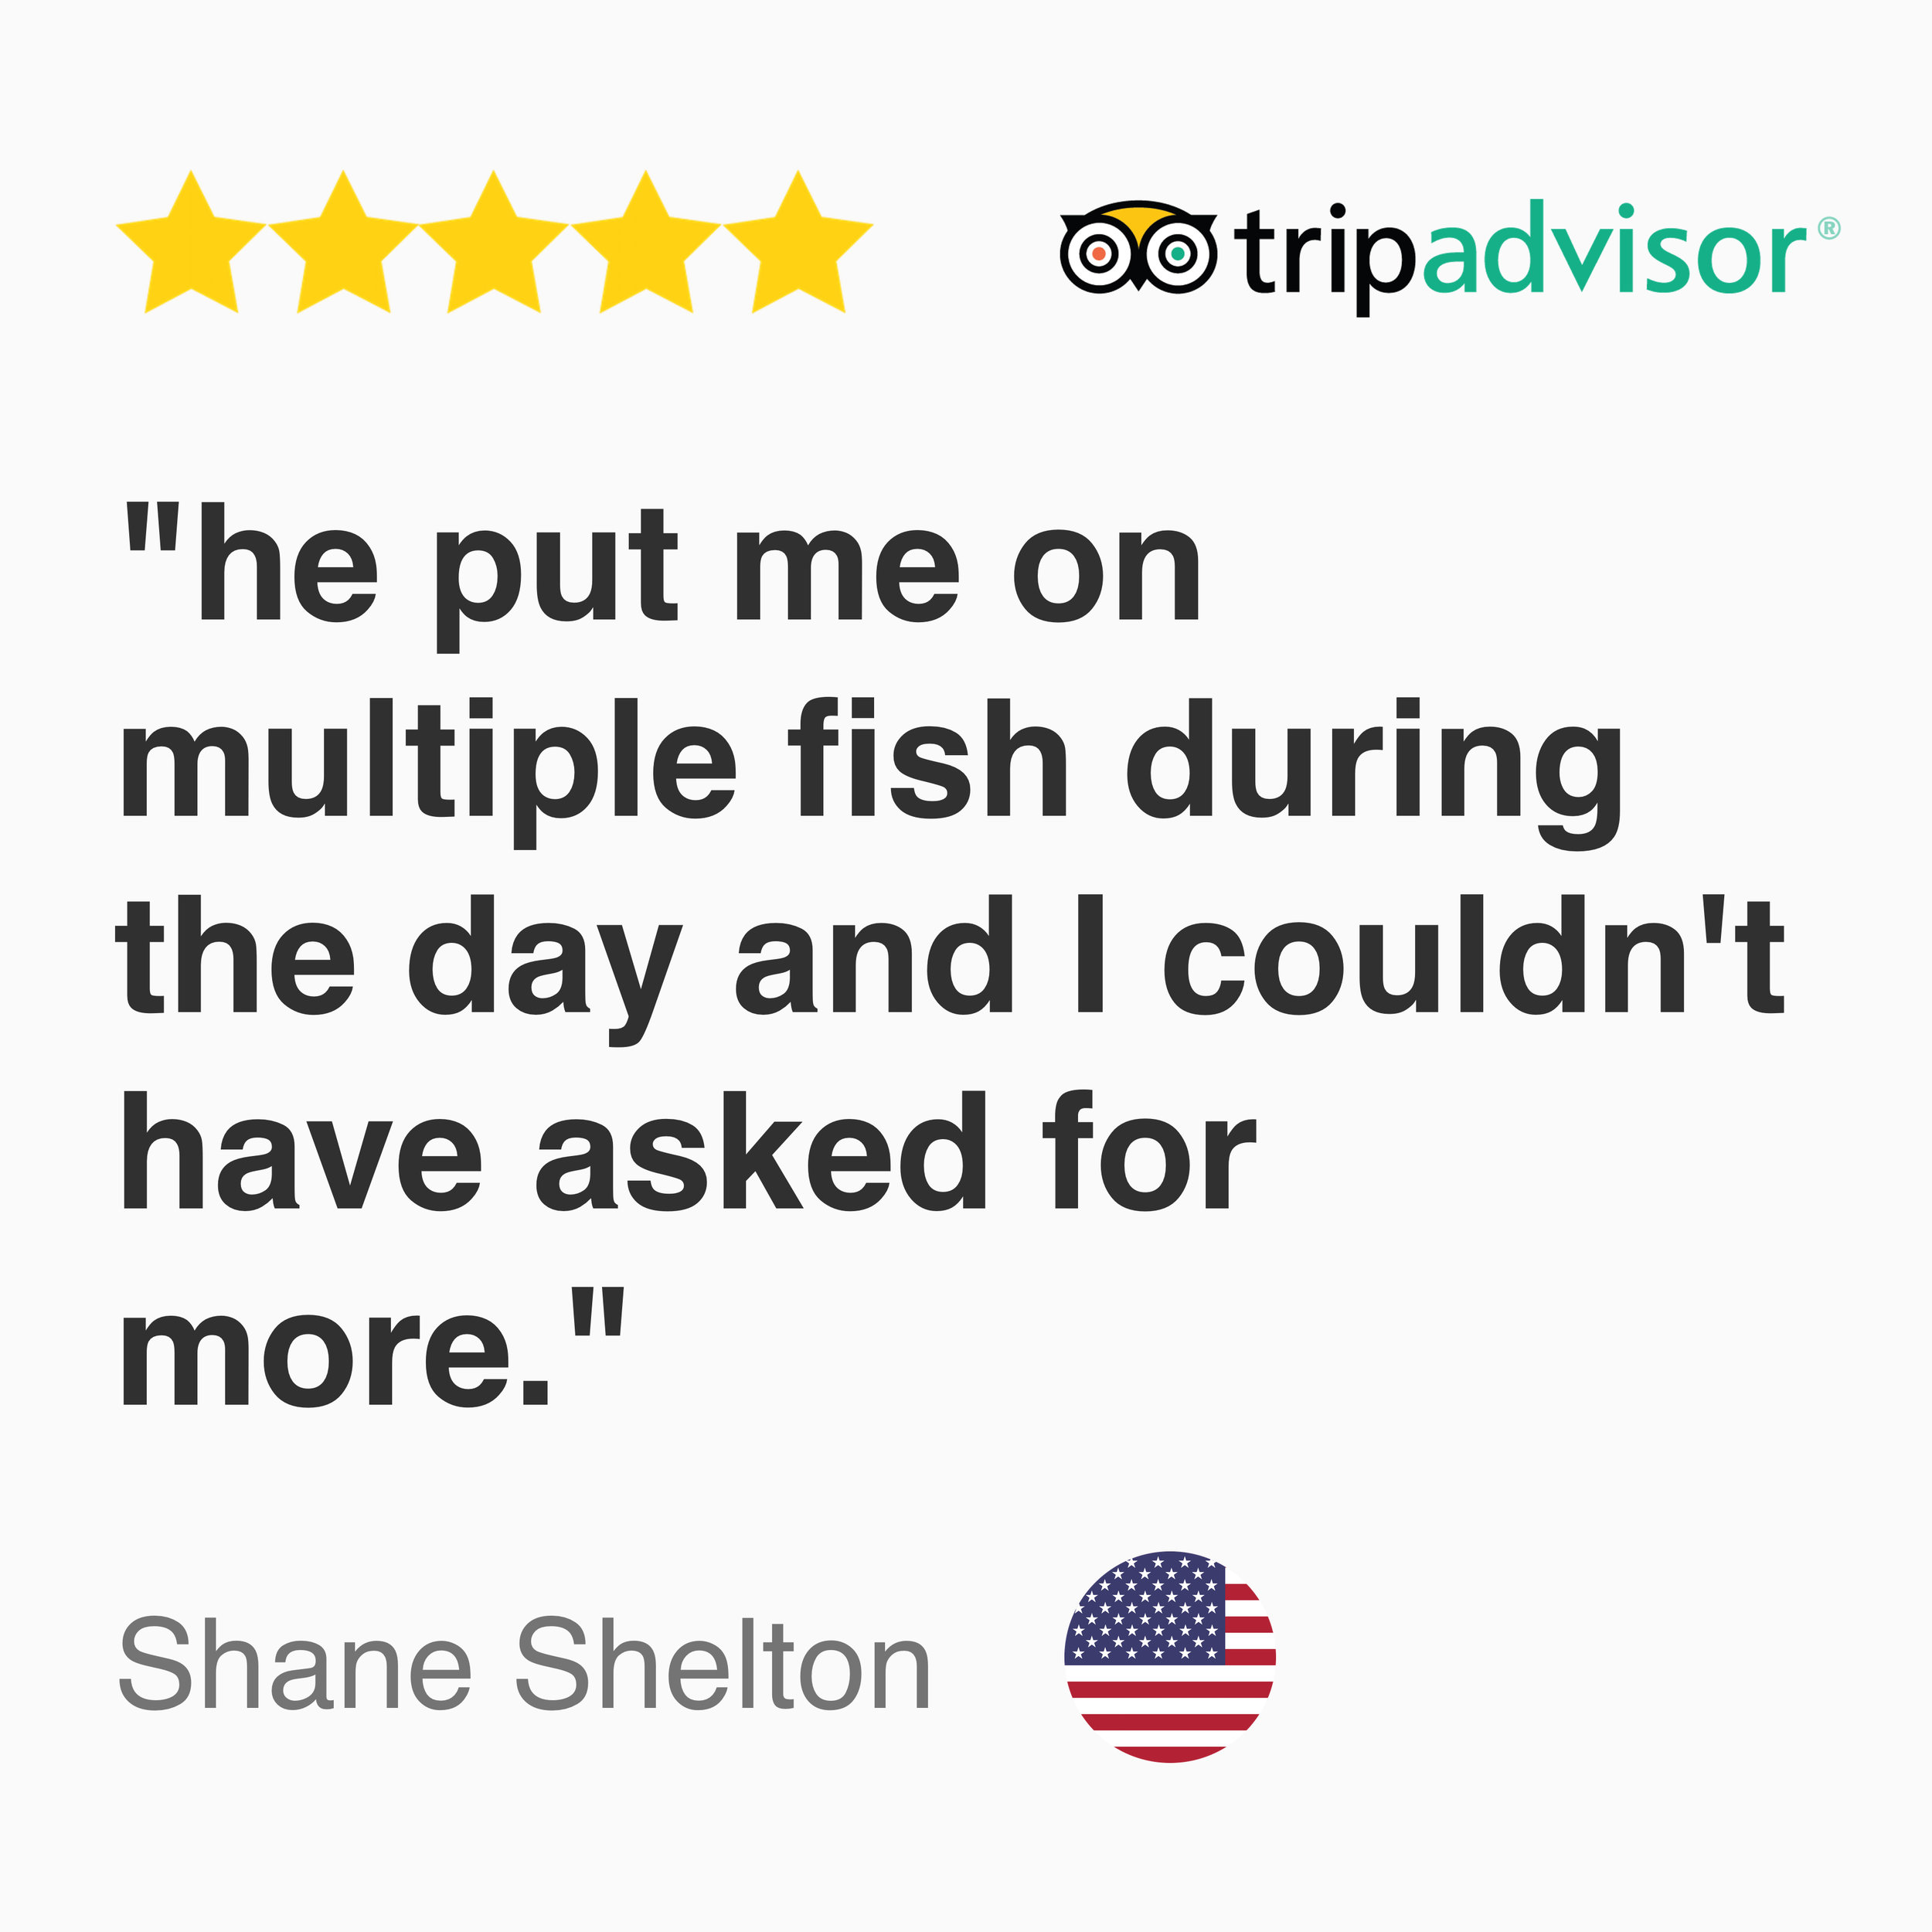 5 star Review for kayak fishing fever 'island hopper' tour, he put me on multiple fish during the day and I couldn't have asked for more.